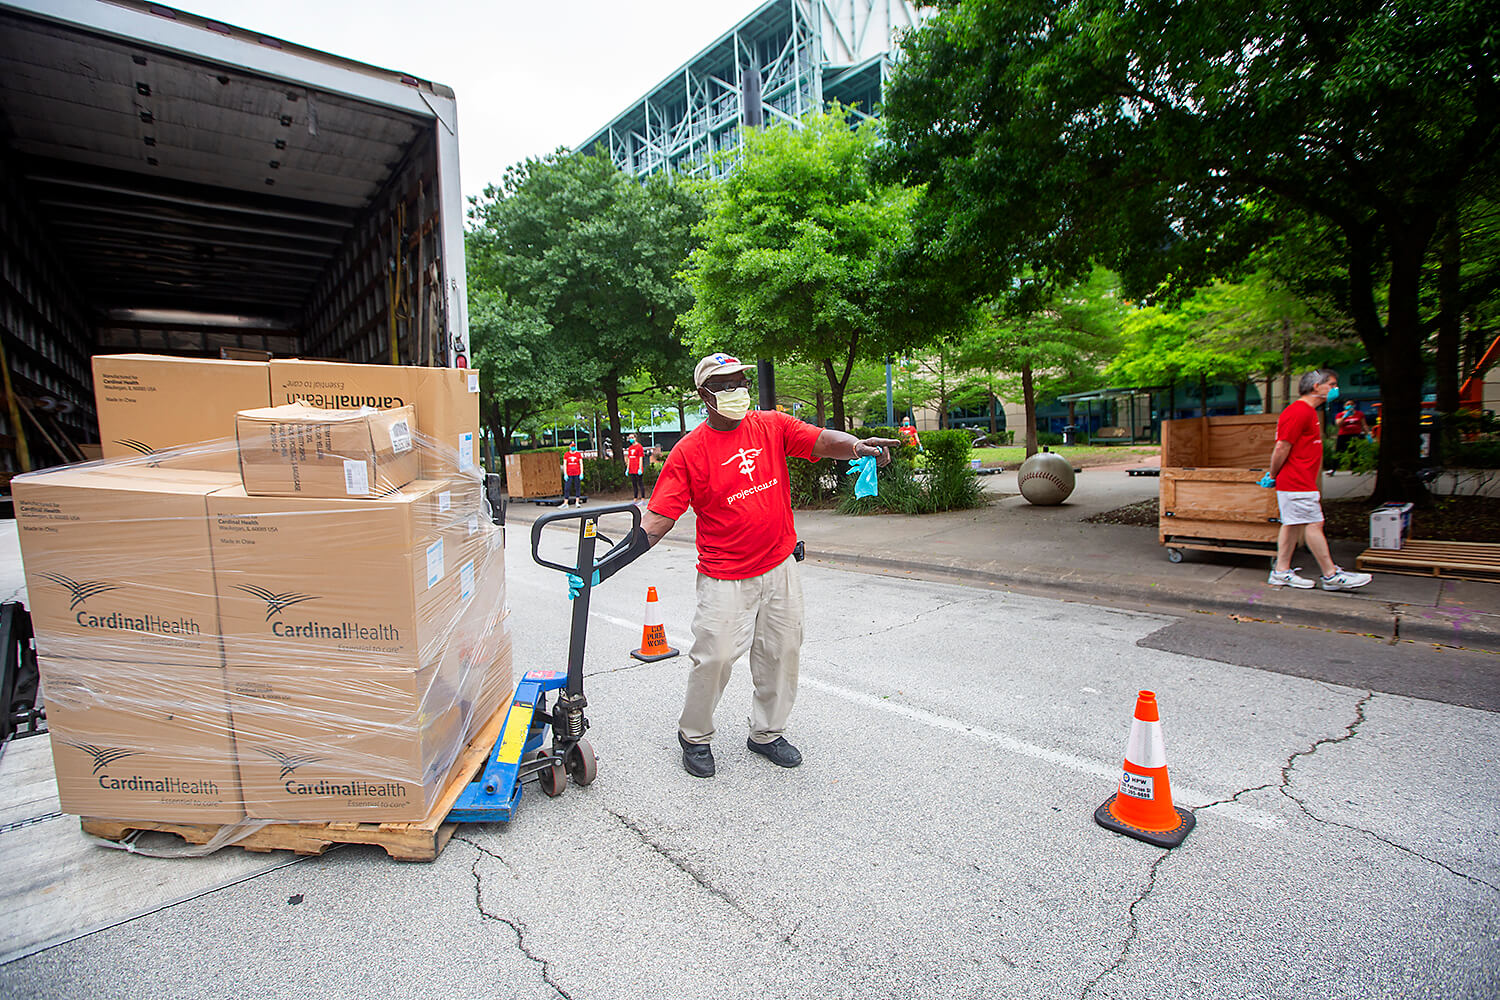 Project C.U.R.E volunteer Howard Amboree unloads pallets from a truck during the donation drive.